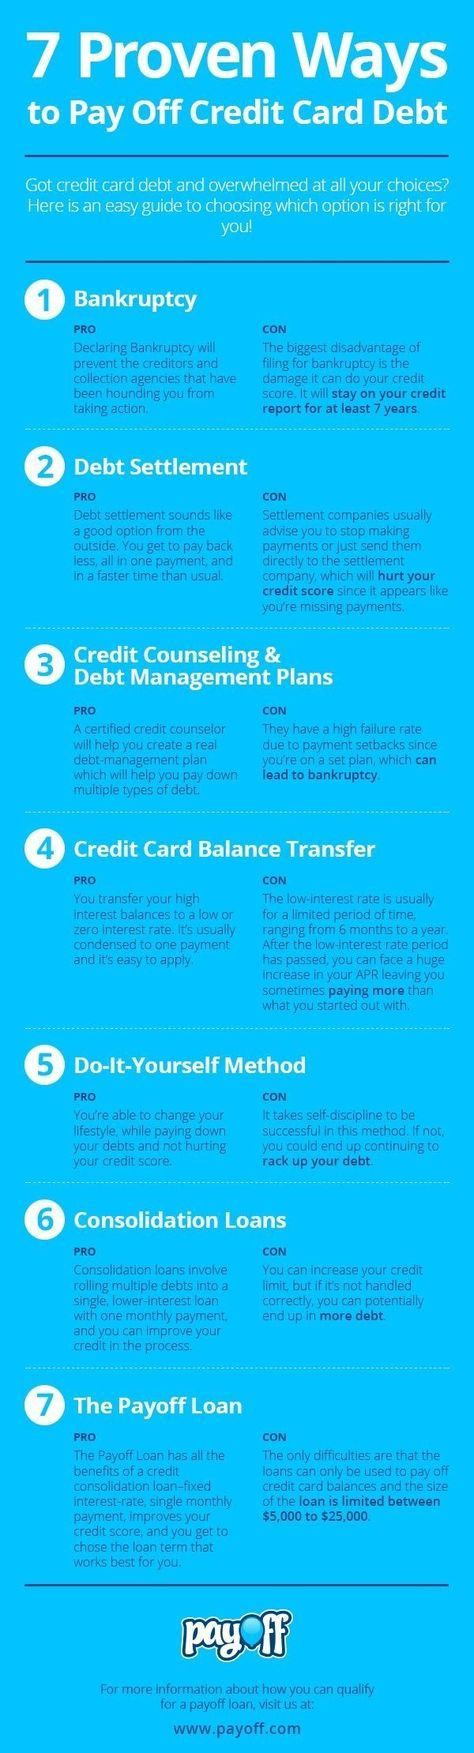 Need Help Sticking To A Budget And Whittling Down Your Debt Payoff Can Be Your Credit Card Refinanci Paying Off Credit Cards Credit Cards Debt Budgeting Money